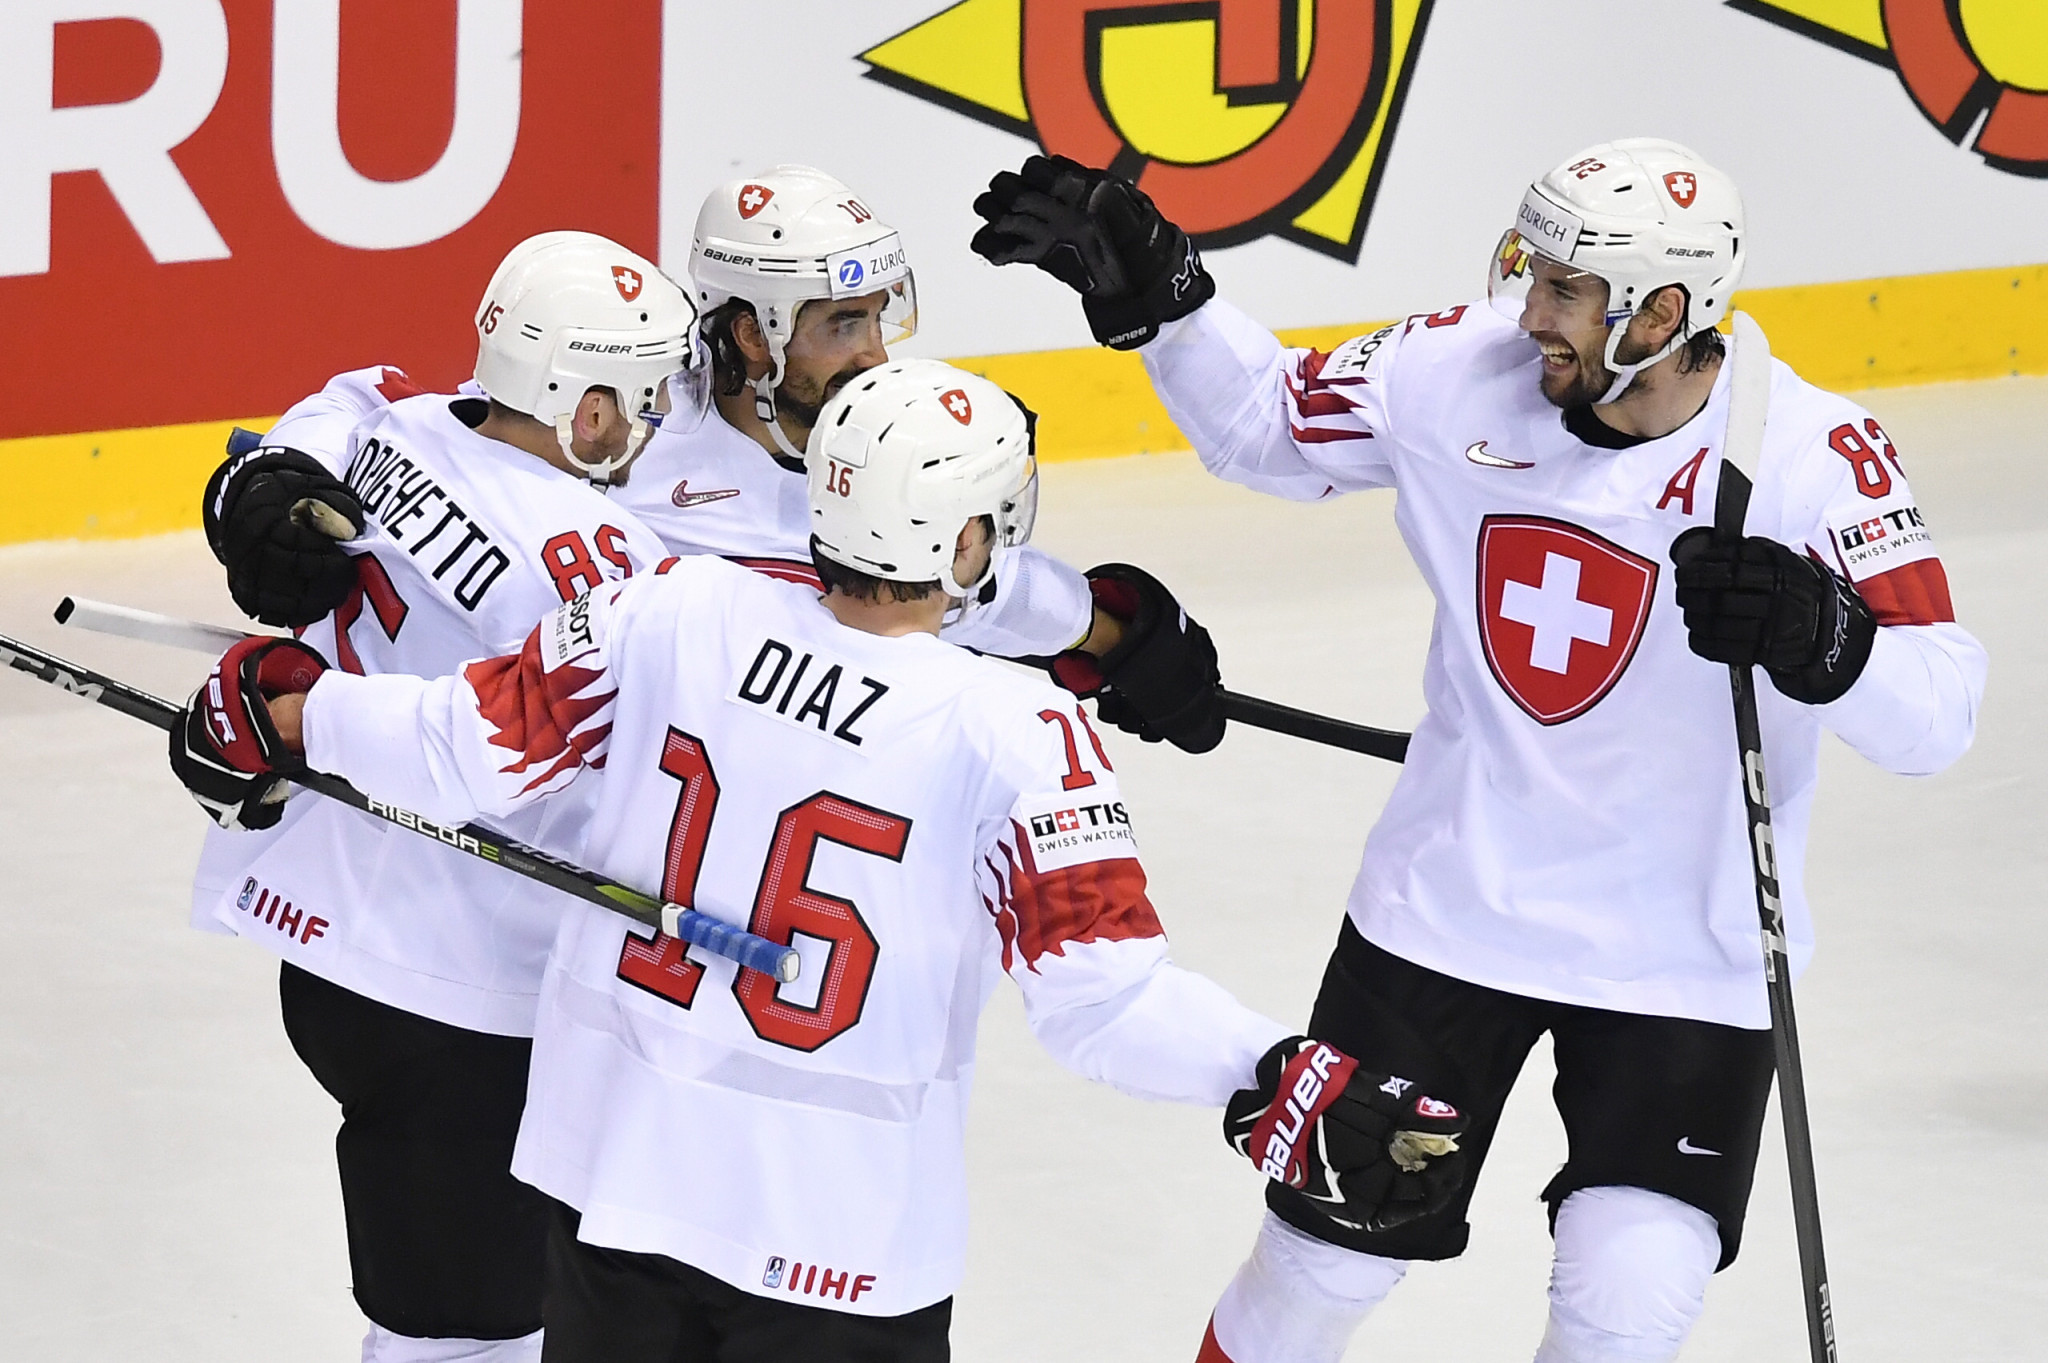 Hosts Switzerland will compete in the 2020 IIHF World Championships alongside 15 other teams ©Getty Images